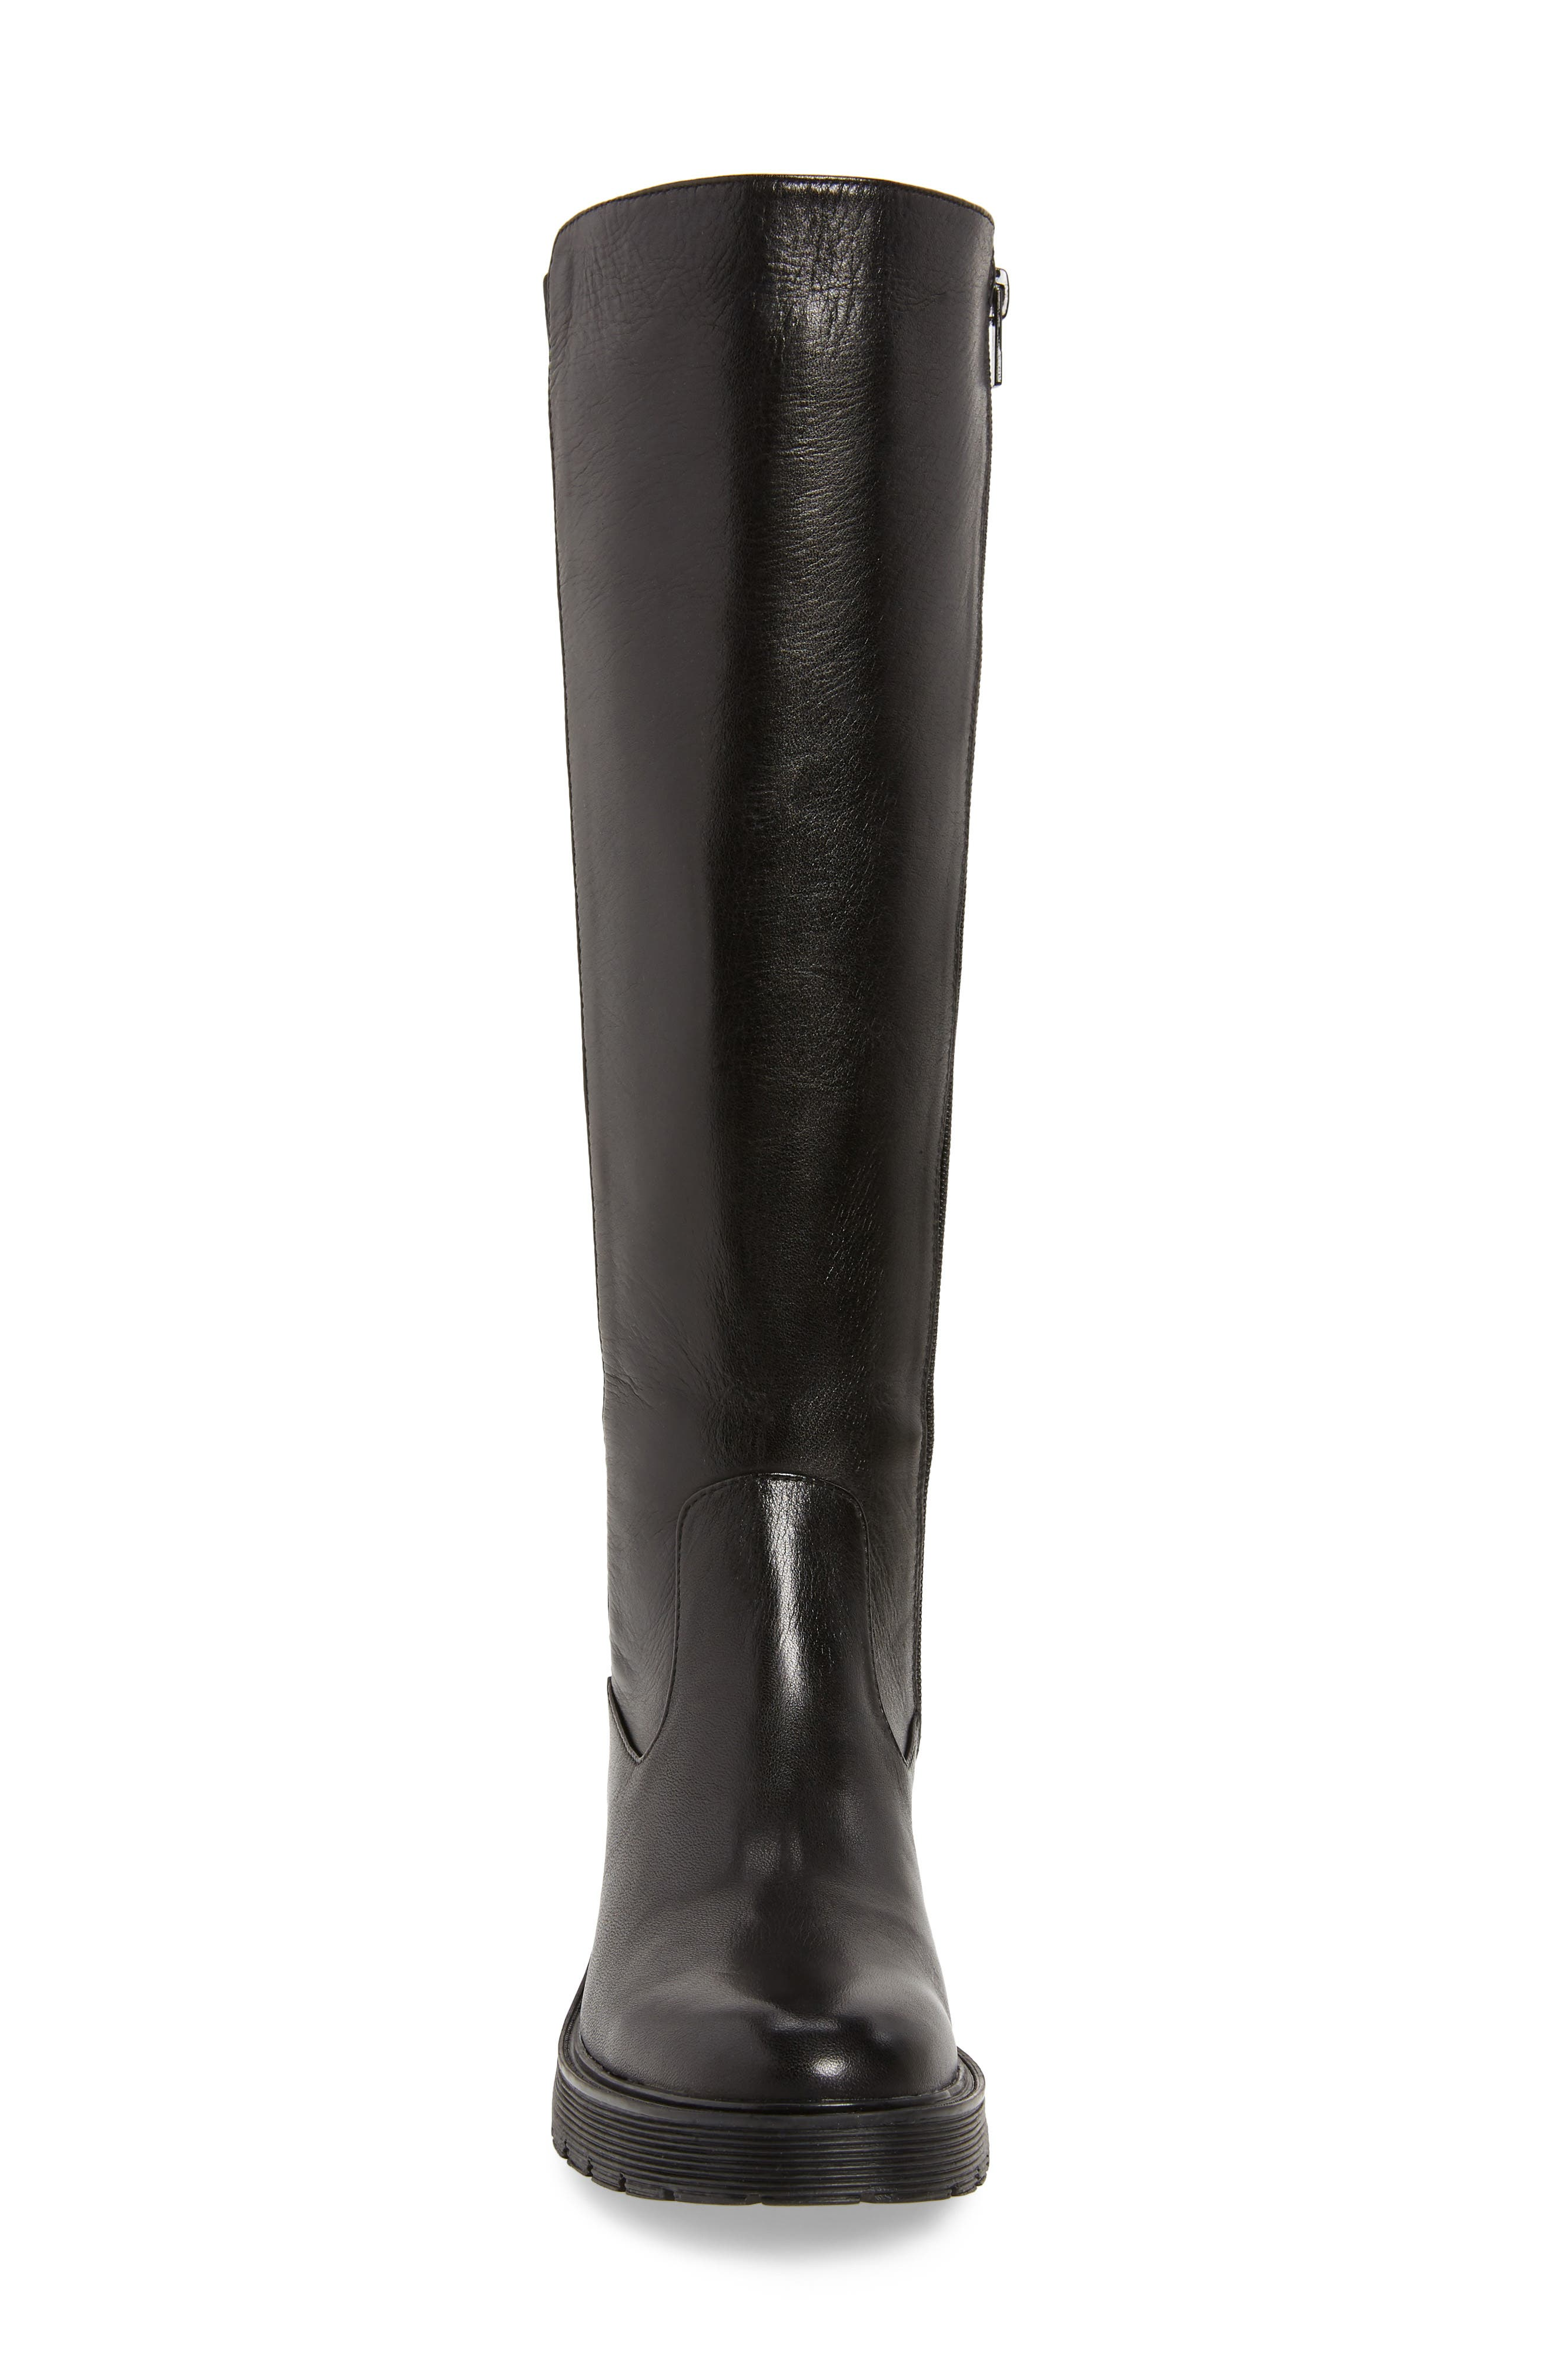 CALVIN KLEIN,                             Themis Knee High Riding Boot,                             Alternate thumbnail 4, color,                             BLACK LEATHER